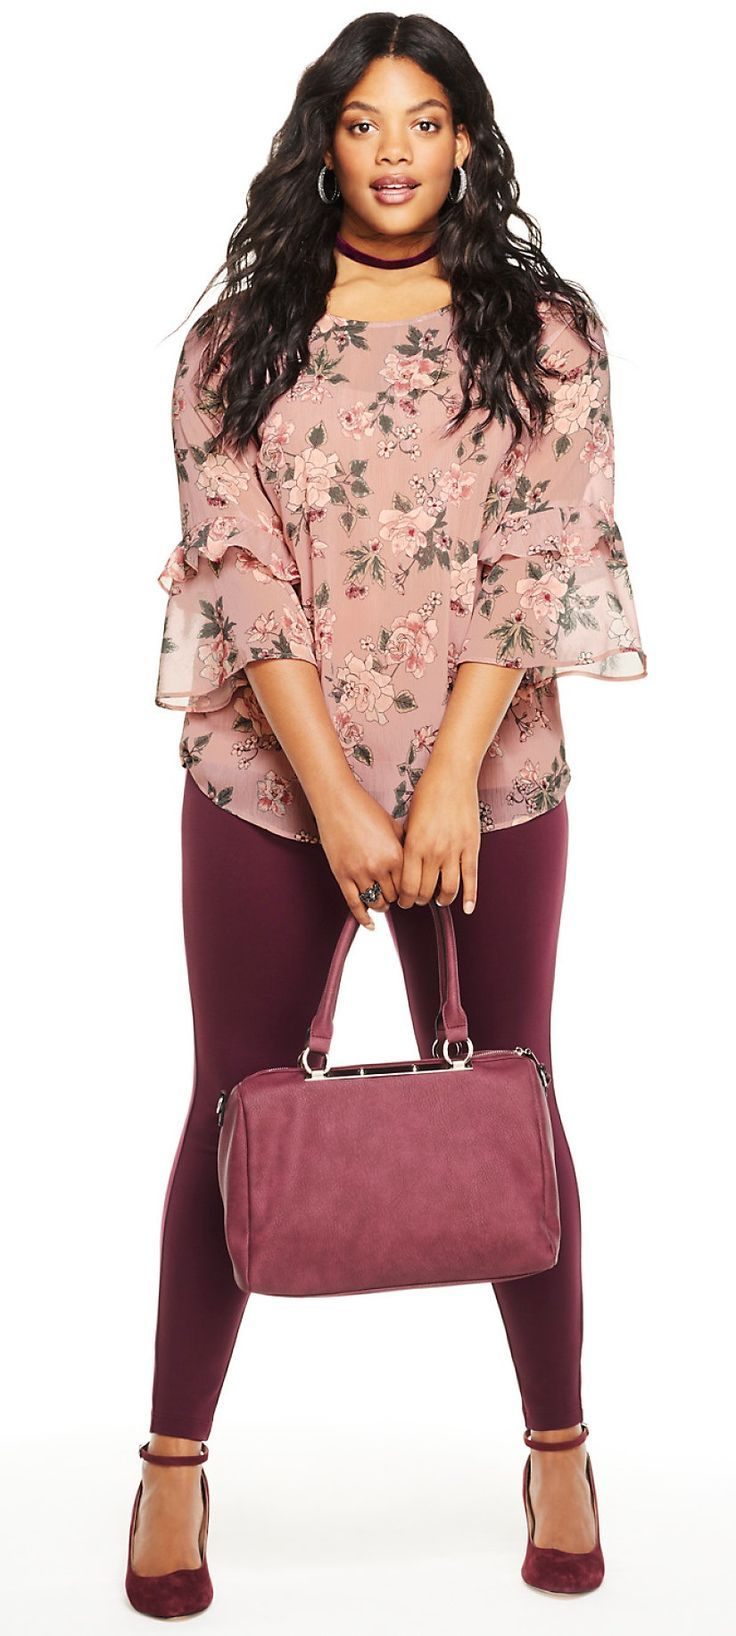 Plus Size Chiffon Blouse - Plus Size Fall Outfit - Plus Size Fashion for Women #plussize